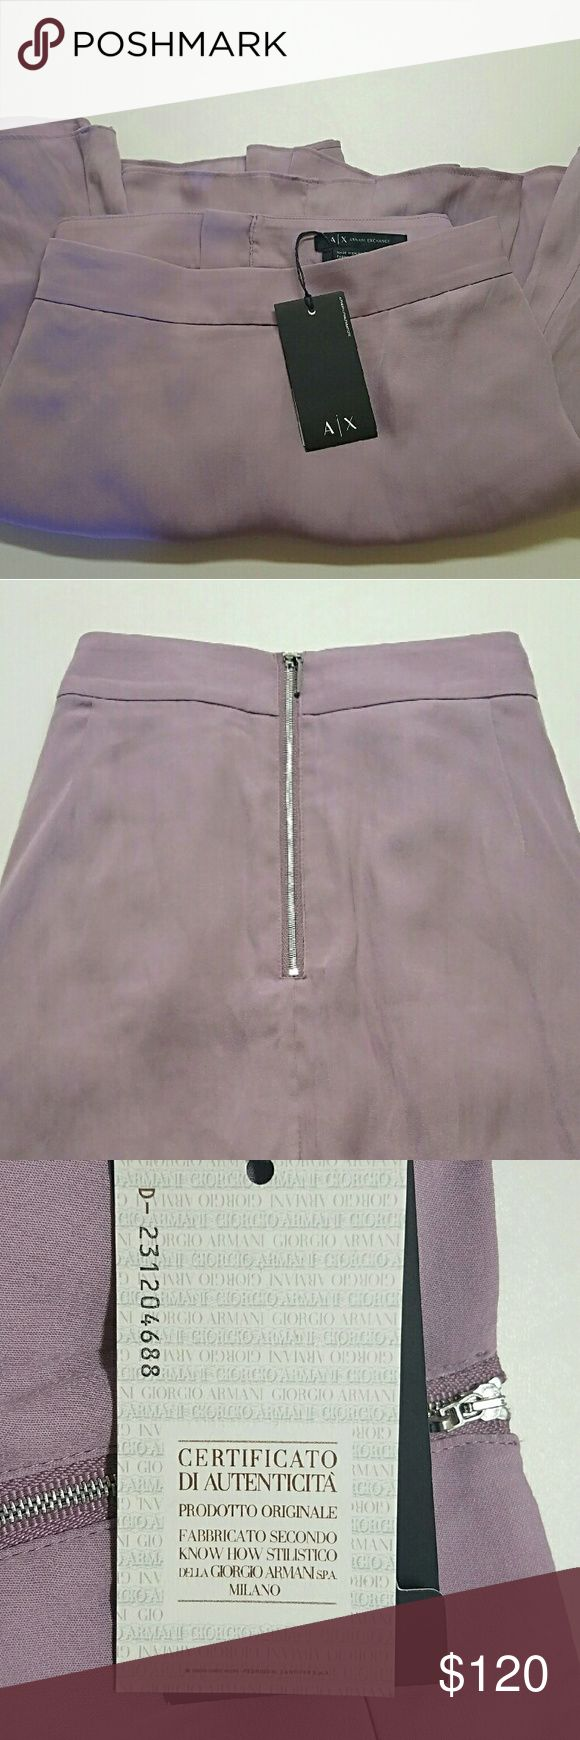 ARMANI EXCHANGE Silk Mini Skort  NWT!!! AX Mini Skort in Mystic Mauve. Made in a lightweight flowy silk. This is definitely fun and flirty, especially for summer. Perfect for day into night!!! Silver zip up back. Two fitted side pockets. Don't let this gem get away, these are VERY hard to find!!! Armani Exchange Skirts Mini